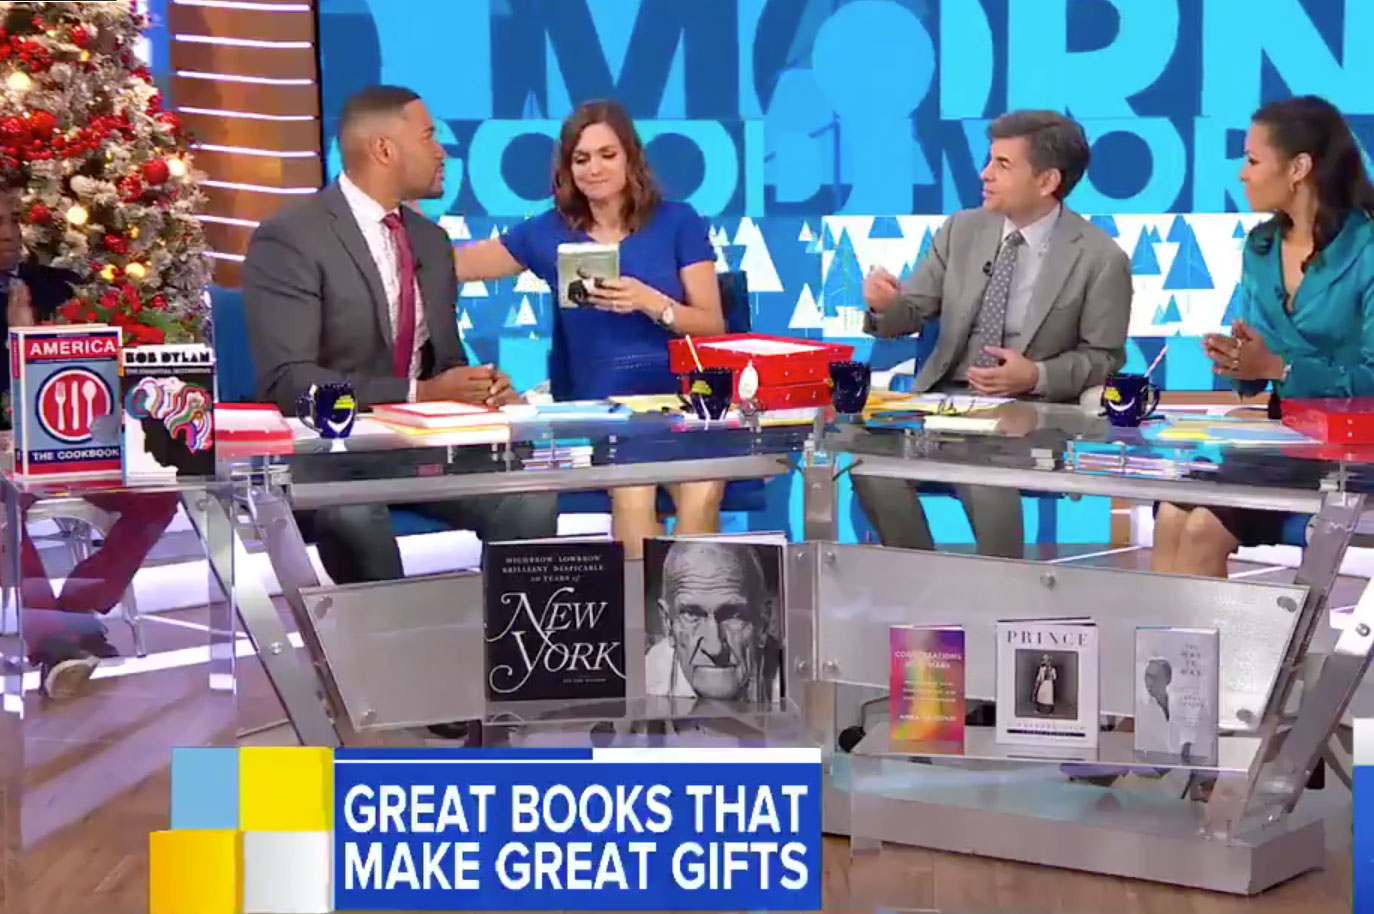 good morning america gifts